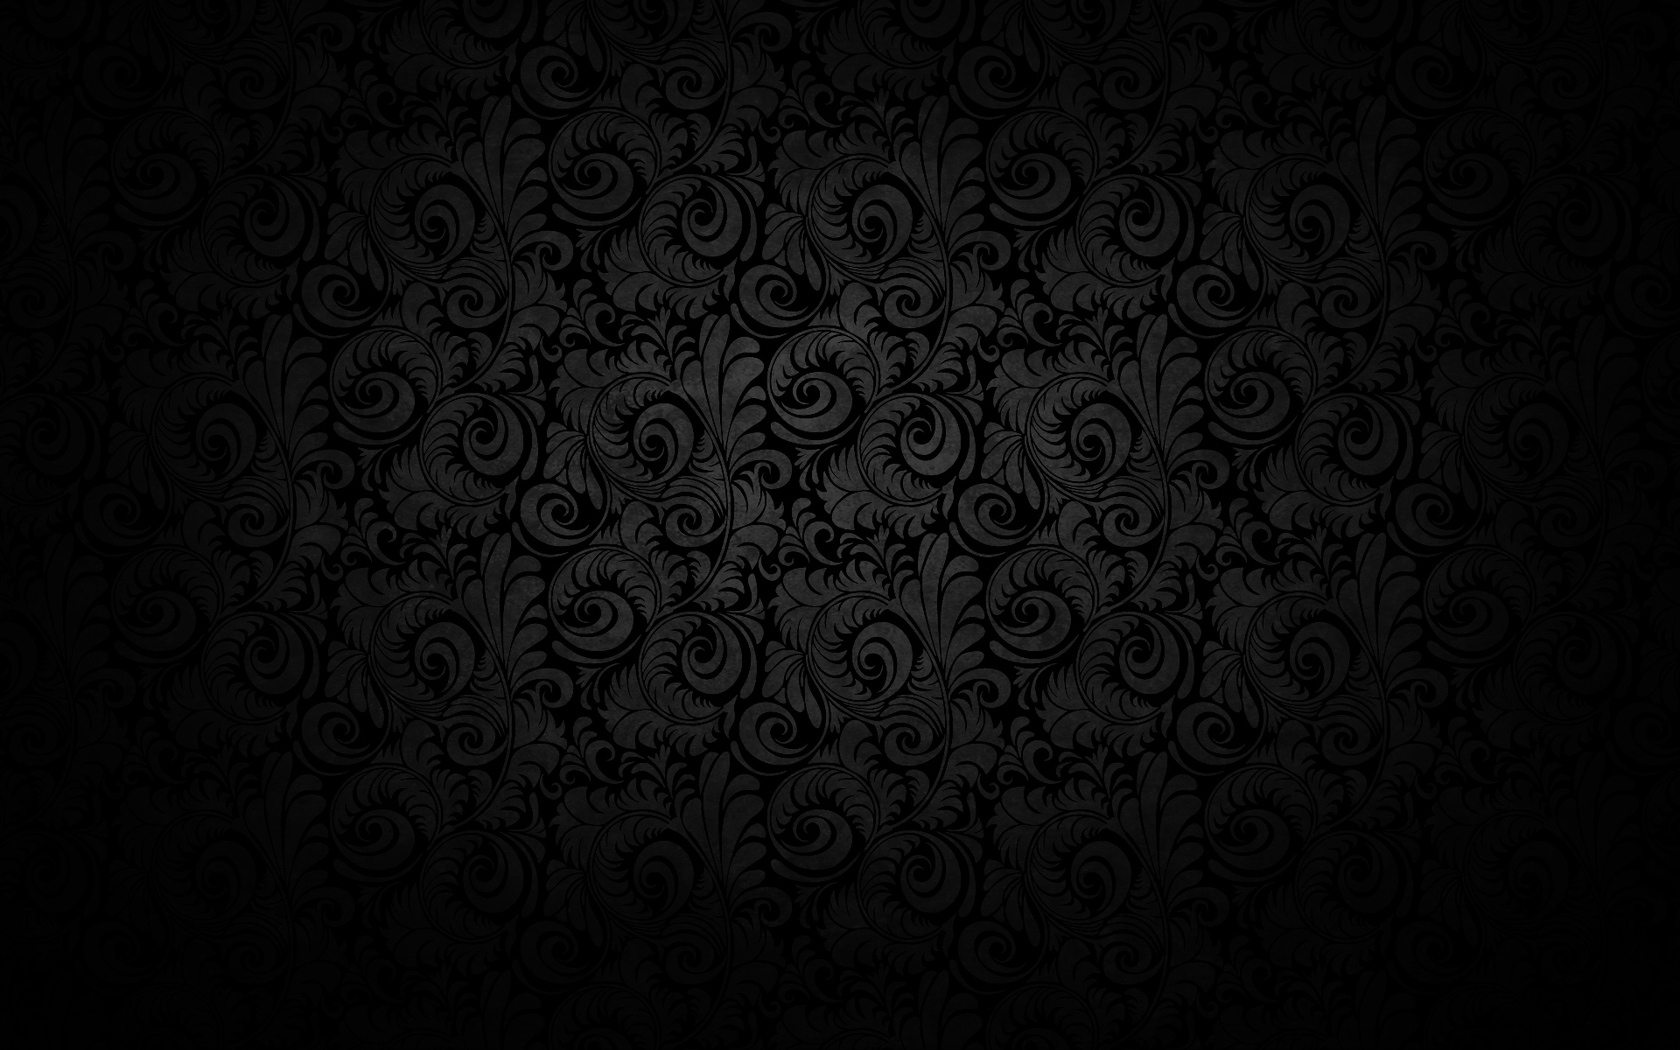 Black Silver Hd Wallpaper 1680x1050